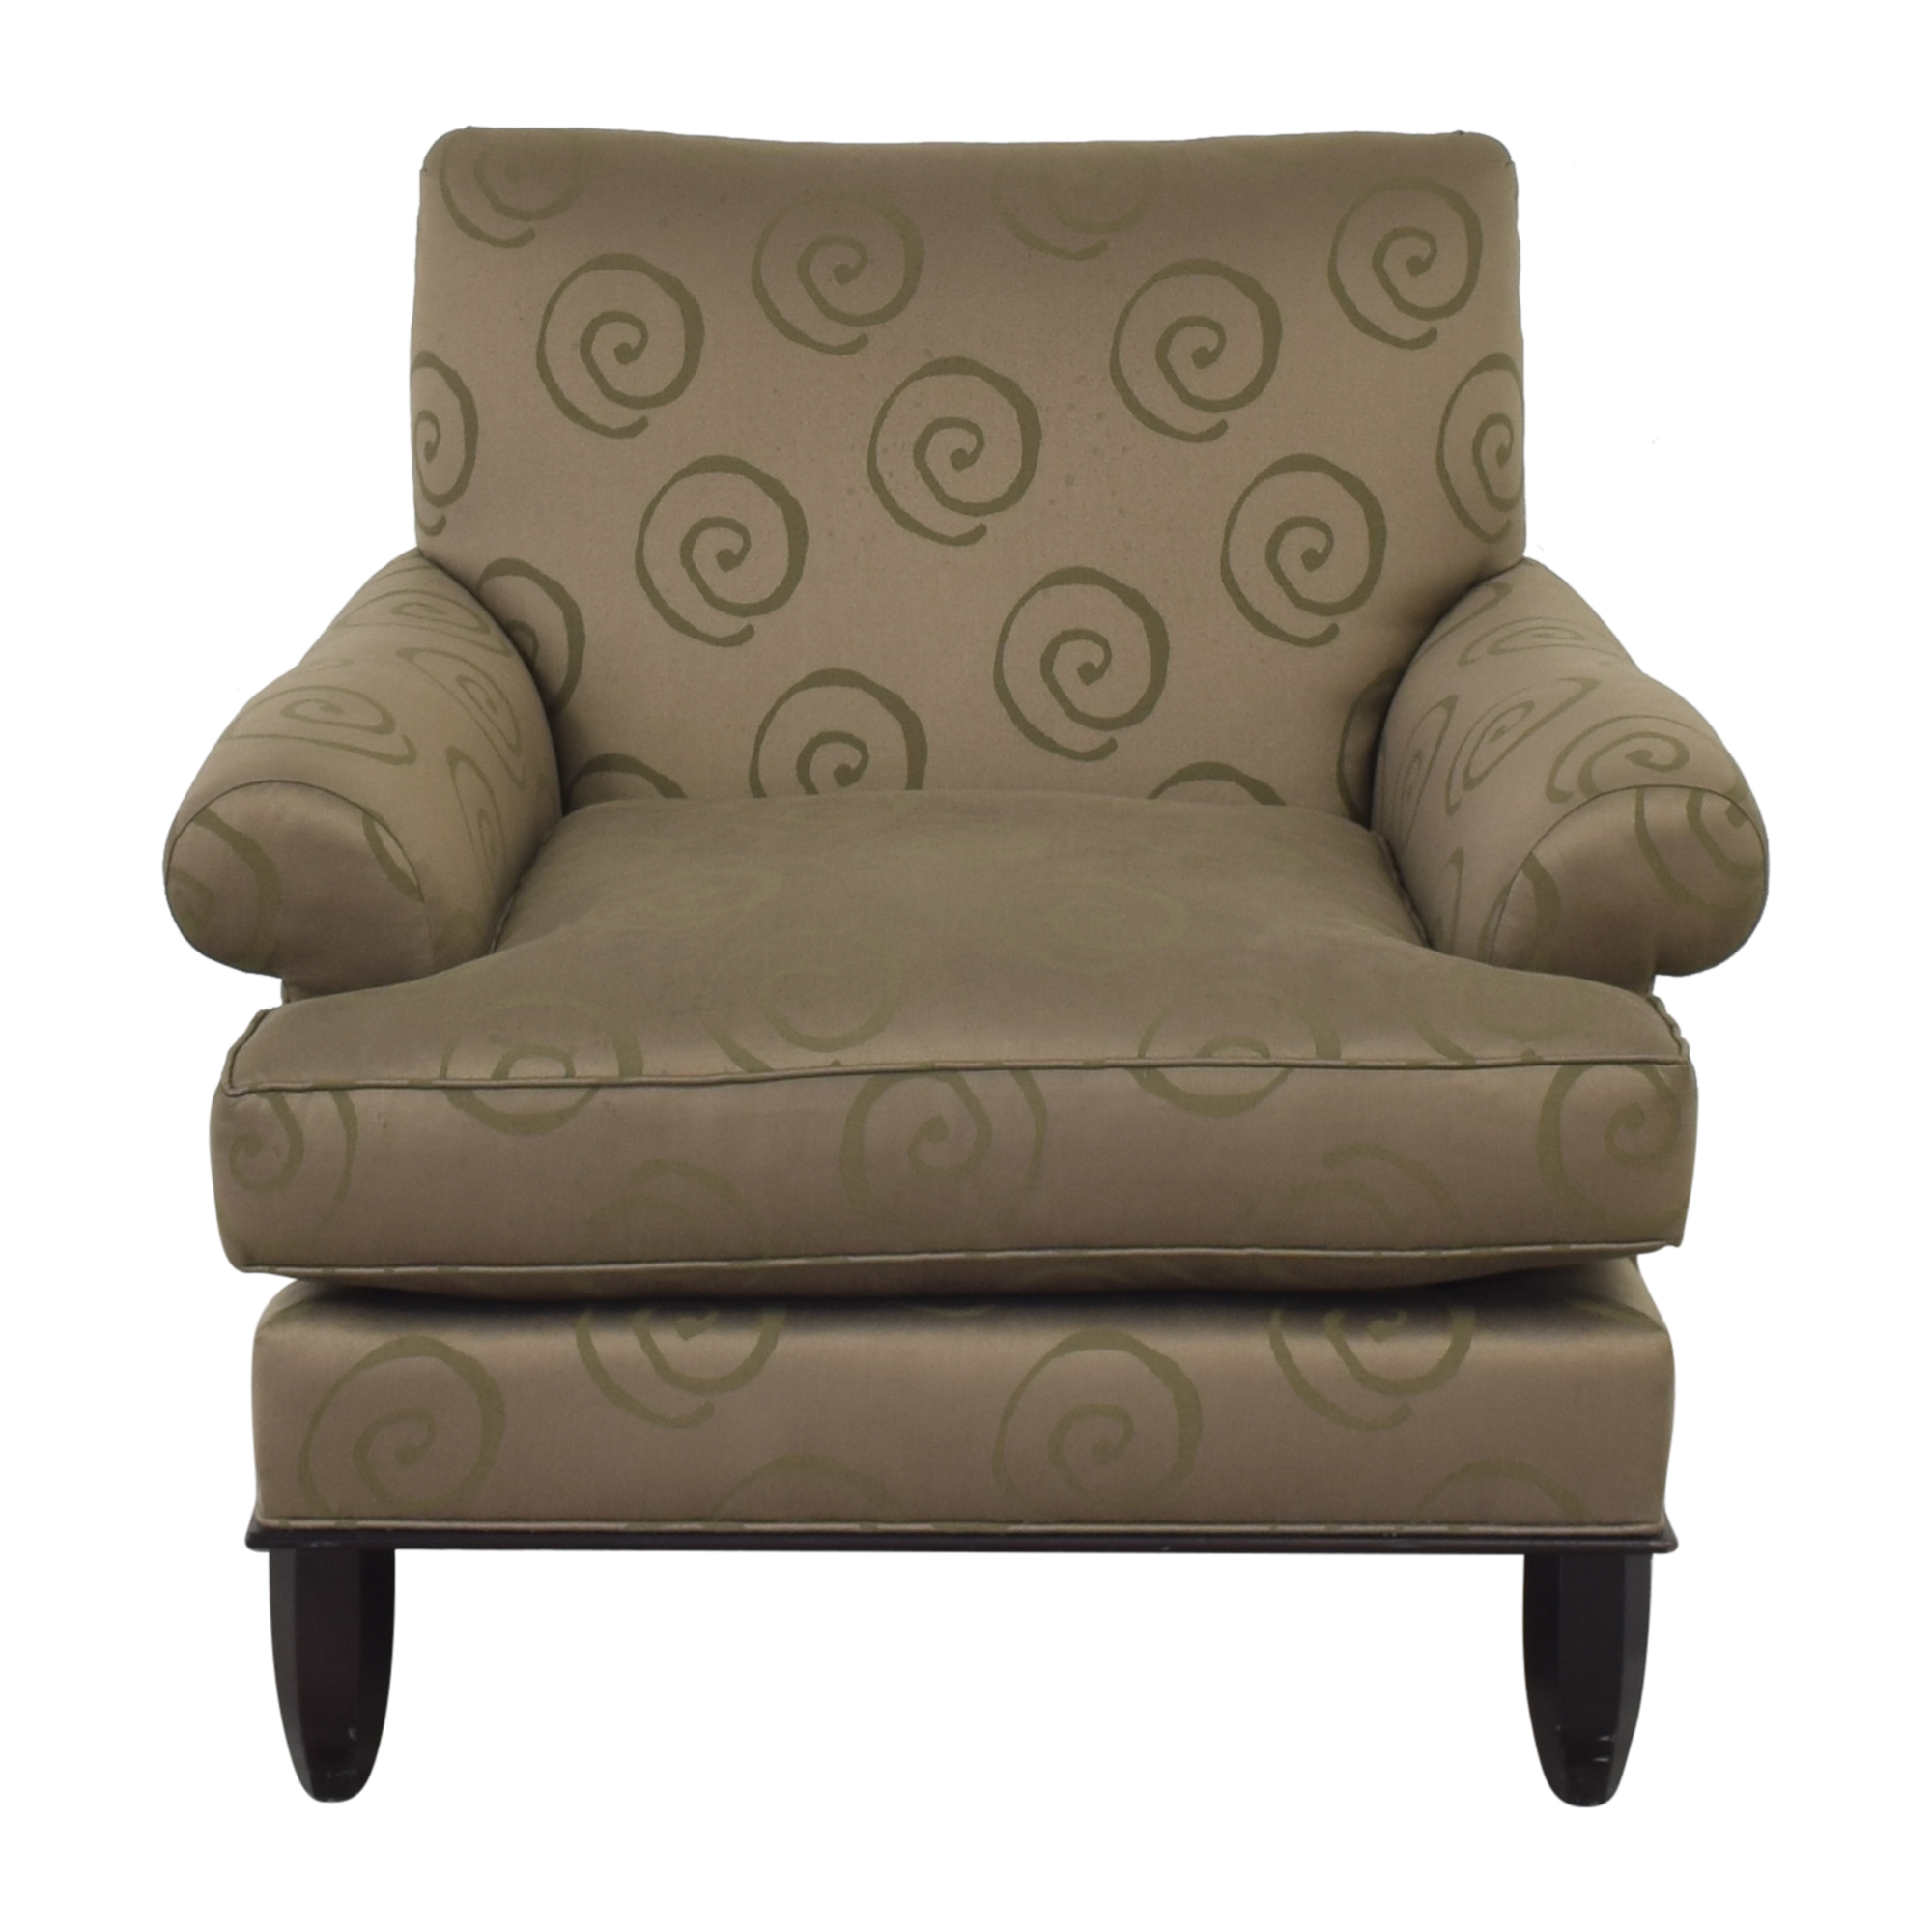 Baker Roll Arm Lounge Chair / Accent Chairs